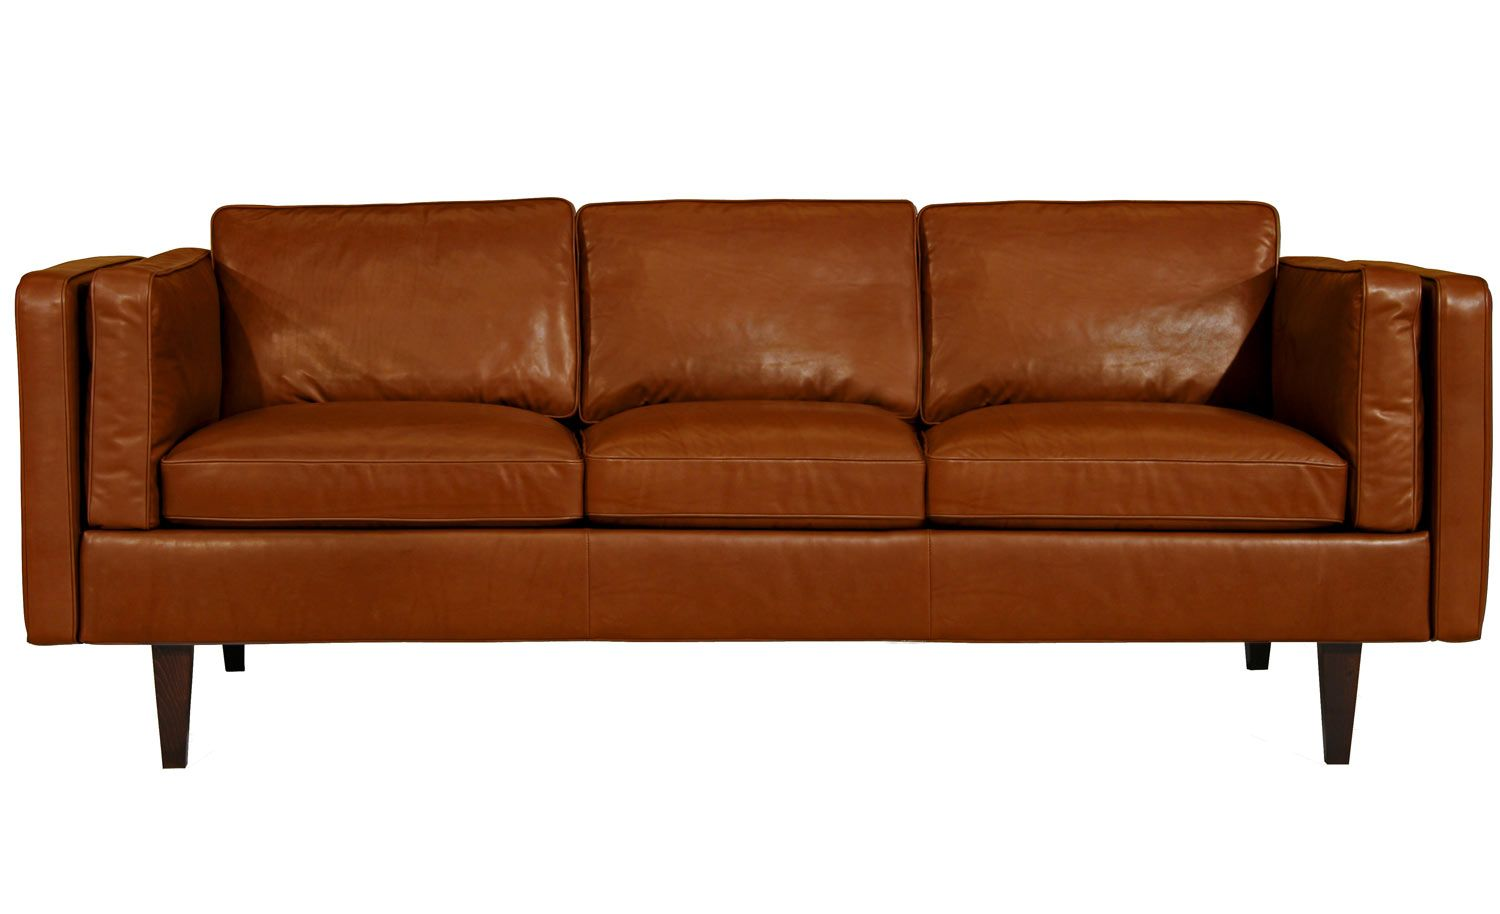 Heal S Sofas Chill Large Leather Sofa Furniture